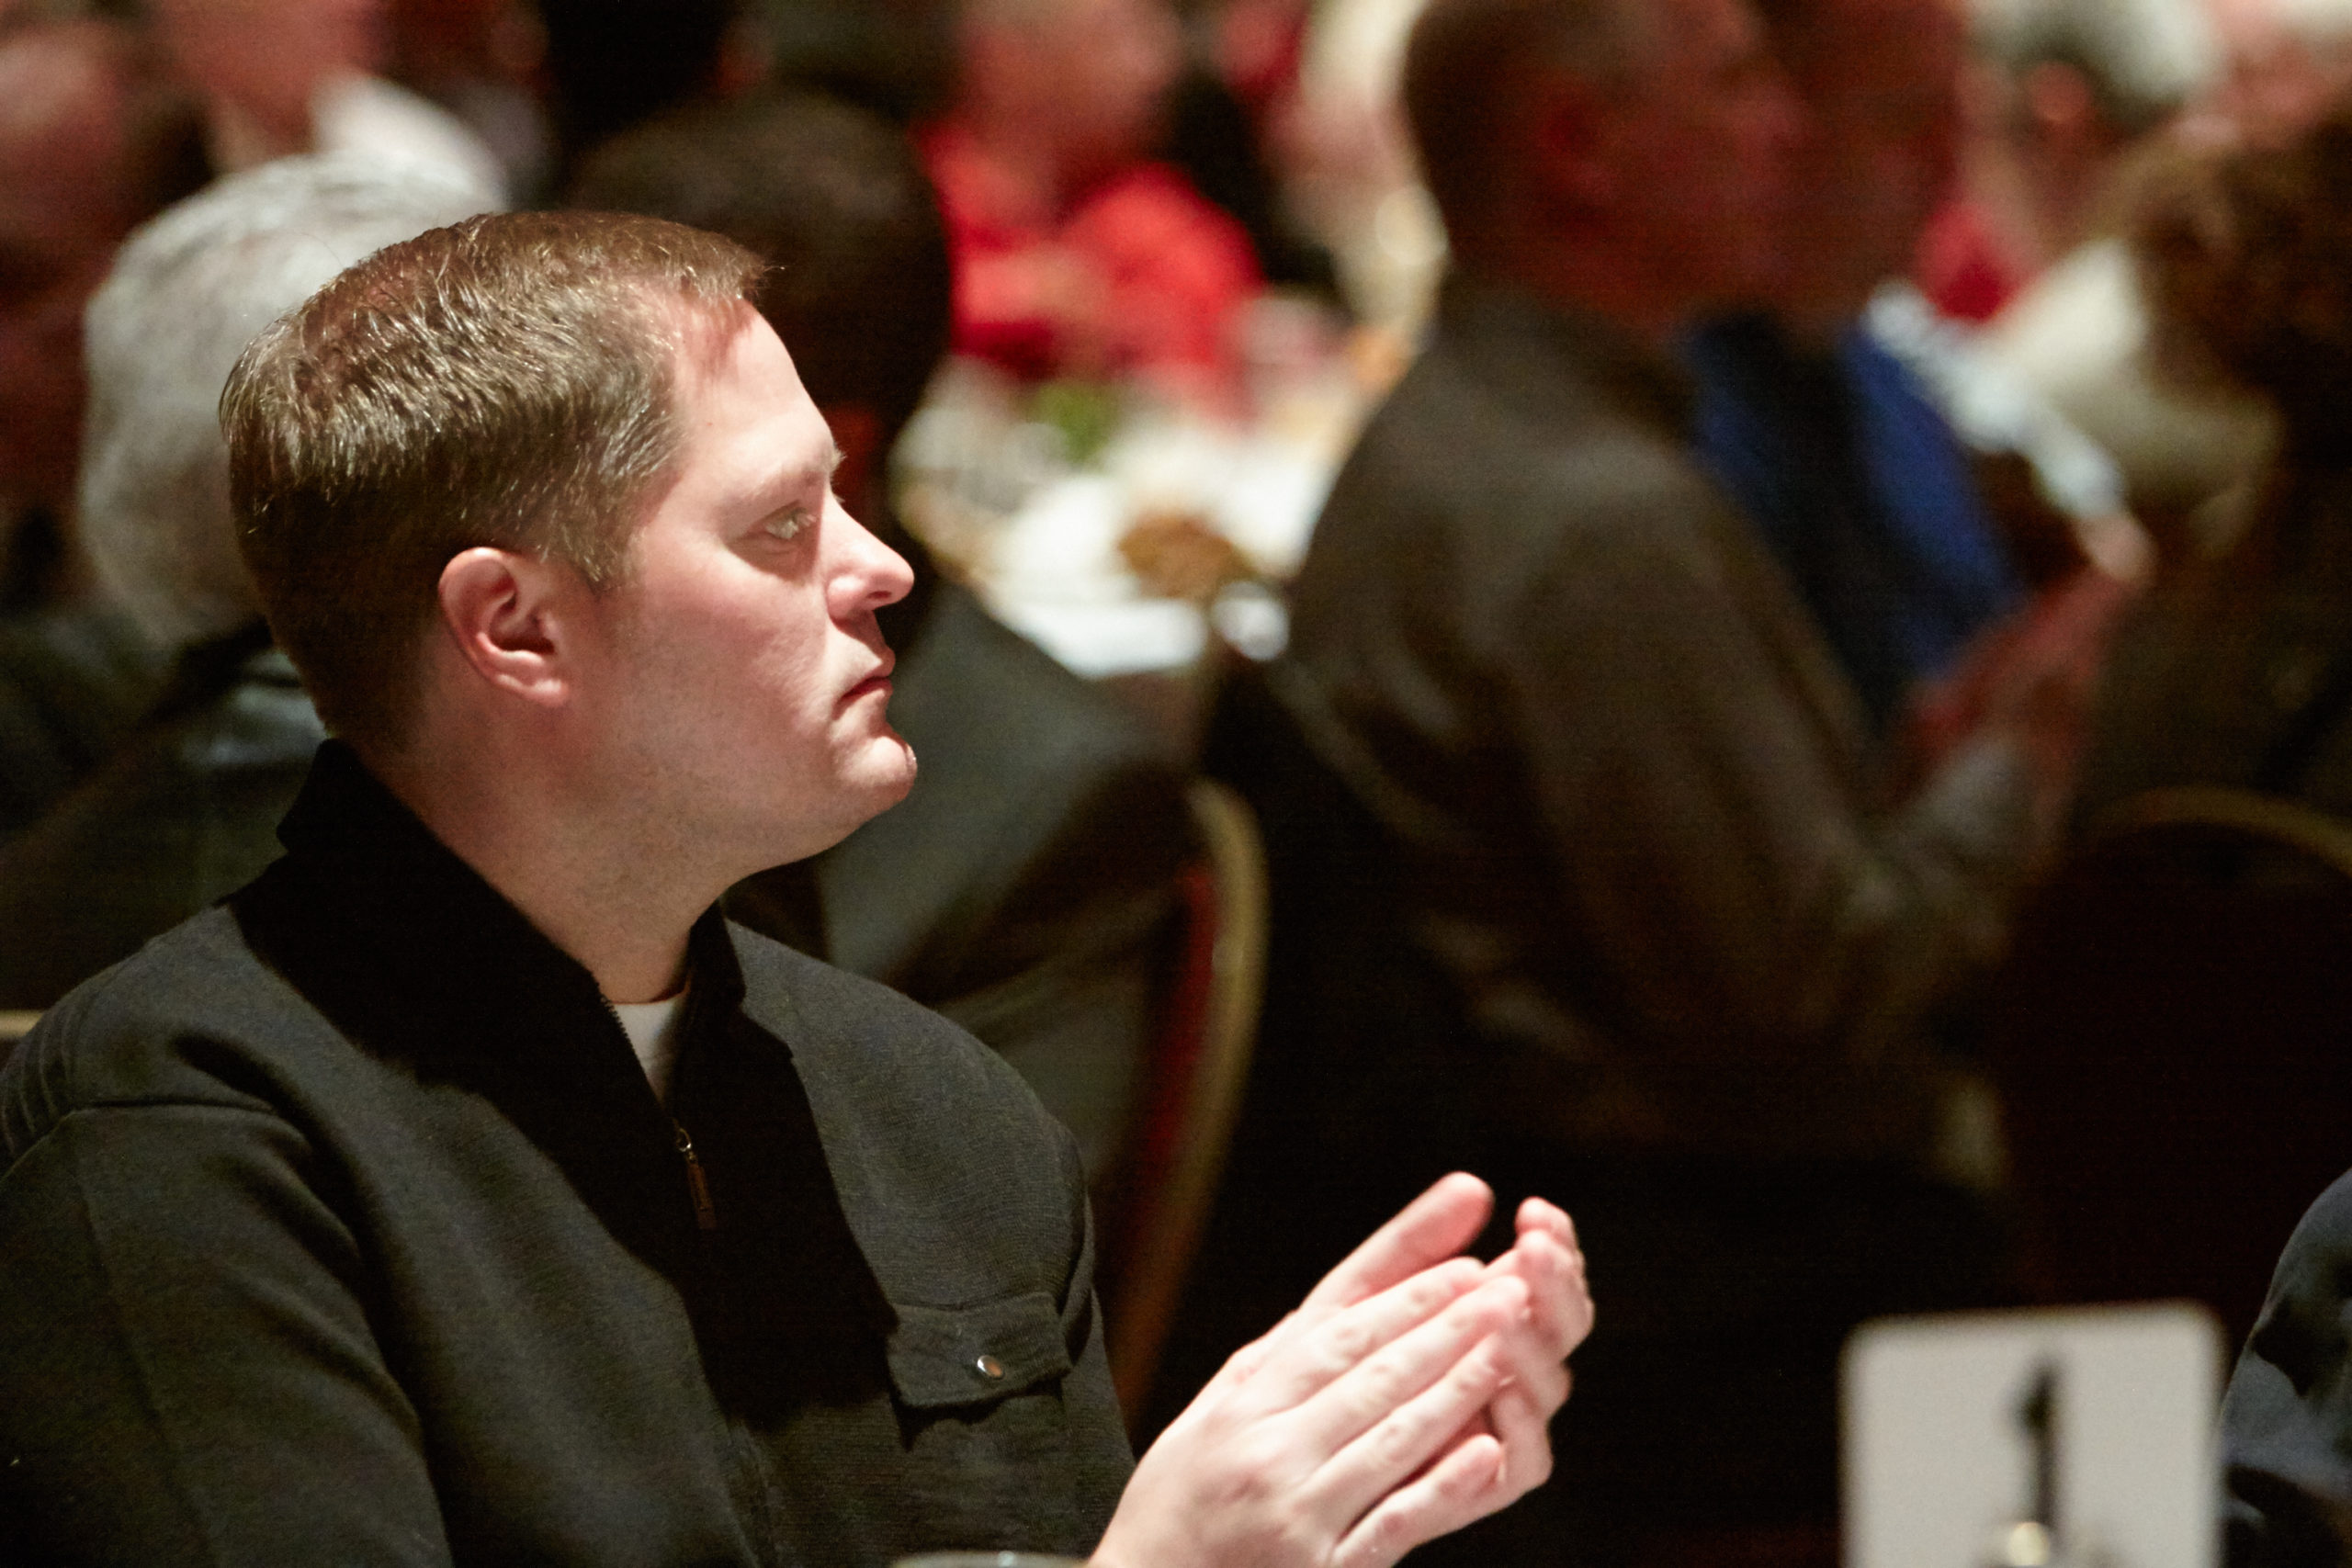 Man clapping | Omaha Leadership Prayer Breakfast